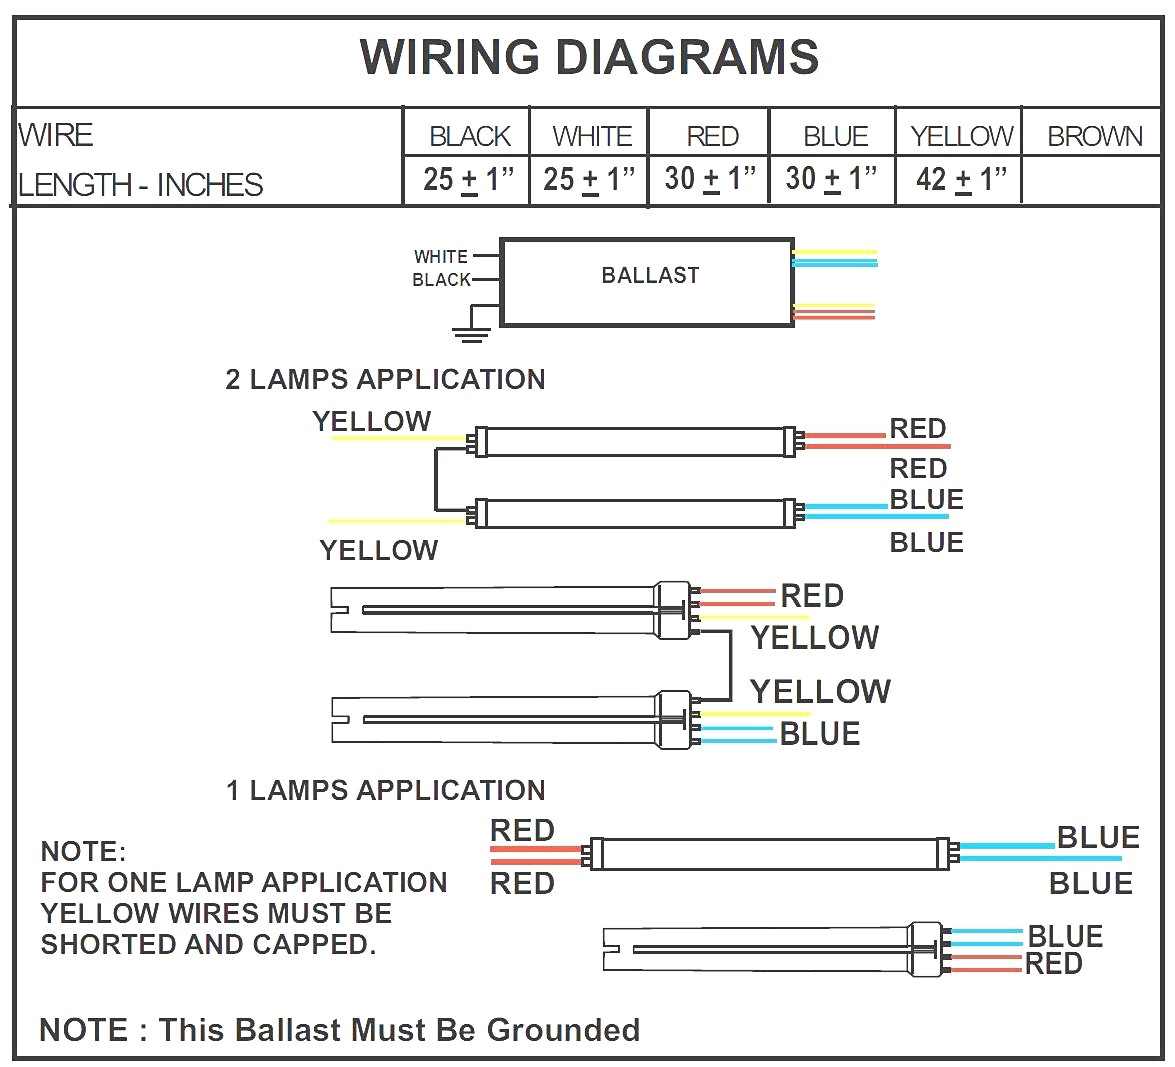 electrical ballast wiring diagram fluorescent    ballast       wiring       diagram    free    wiring       diagram     fluorescent    ballast       wiring       diagram    free    wiring       diagram